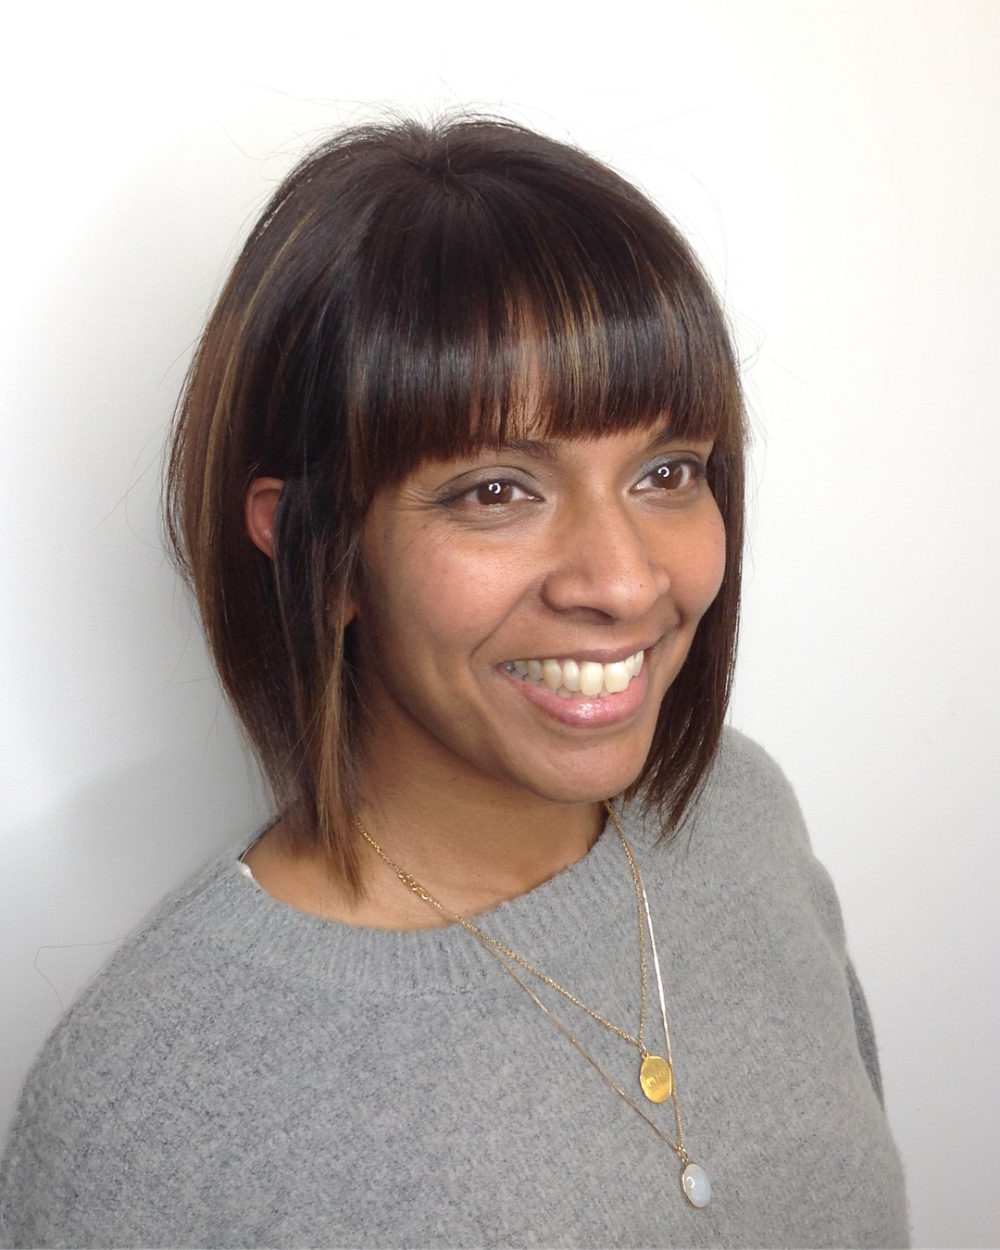 46 Bob With Bangs Hairstyle Ideas Trending For 2020 Regarding Current Bob Hairstyles With Bangs (View 18 of 20)